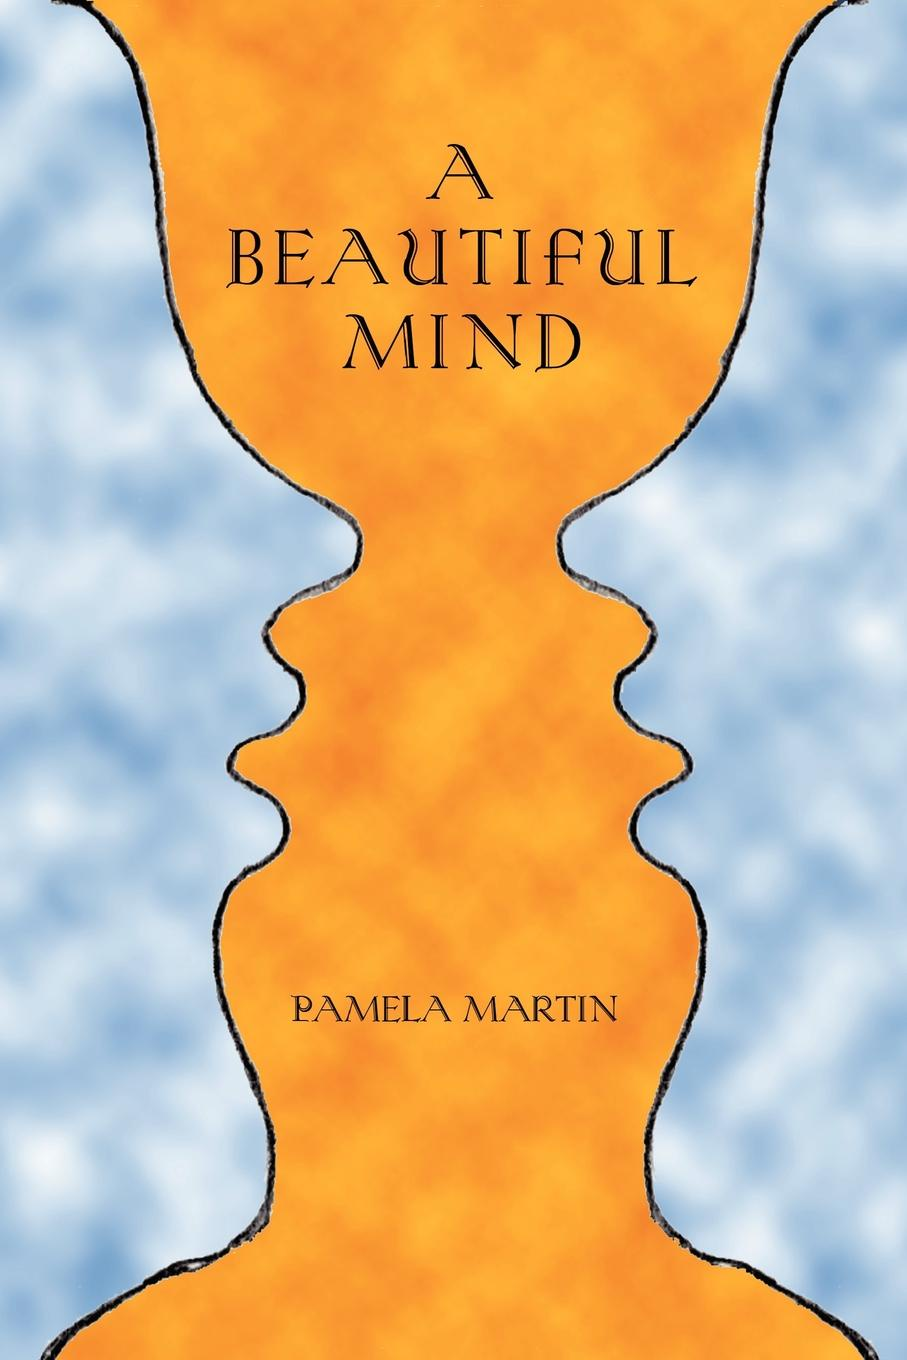 Pamela Martin A Beautiful Mind александр дюма taking the bastille illustrated by paul hardy